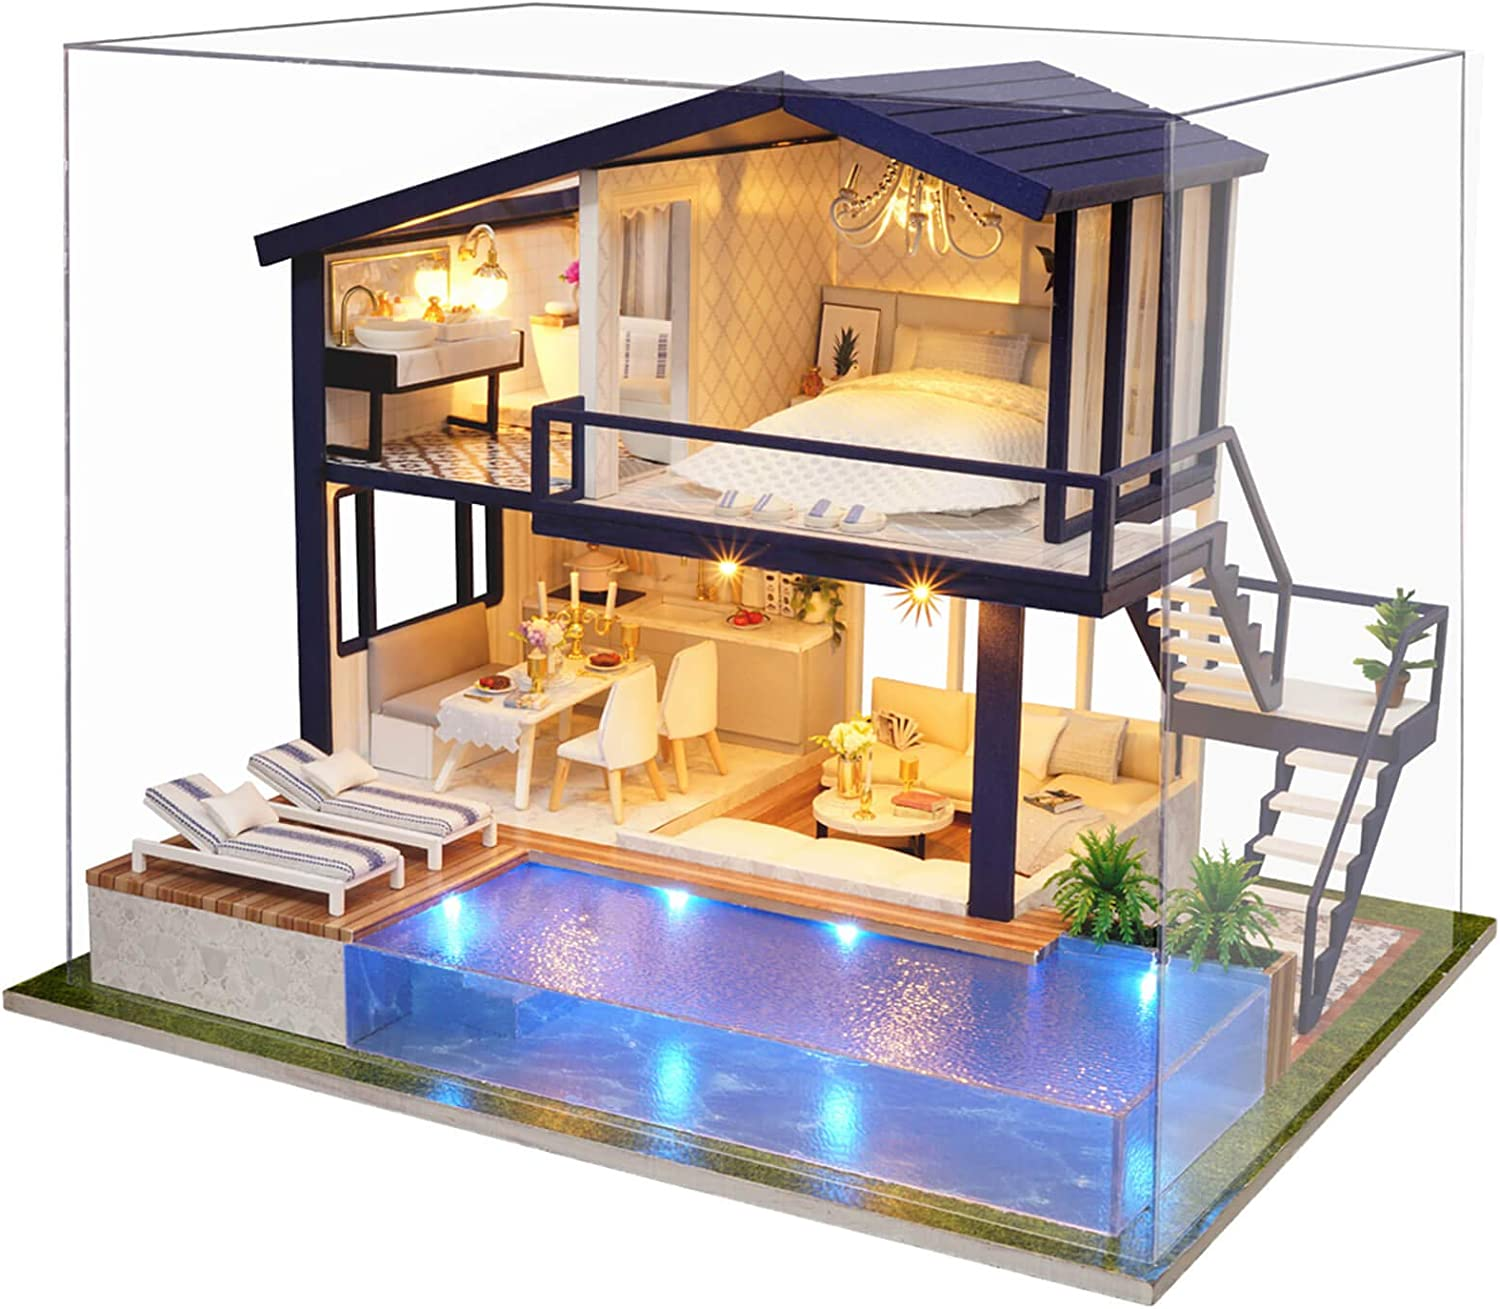 WADILE DIY Dollhouse Kits Wooden Model Handmade Miniature Kit Creative Gift Furniture Realistic and Suitable for Children Over 14 Years Old Or with The Help of Adults